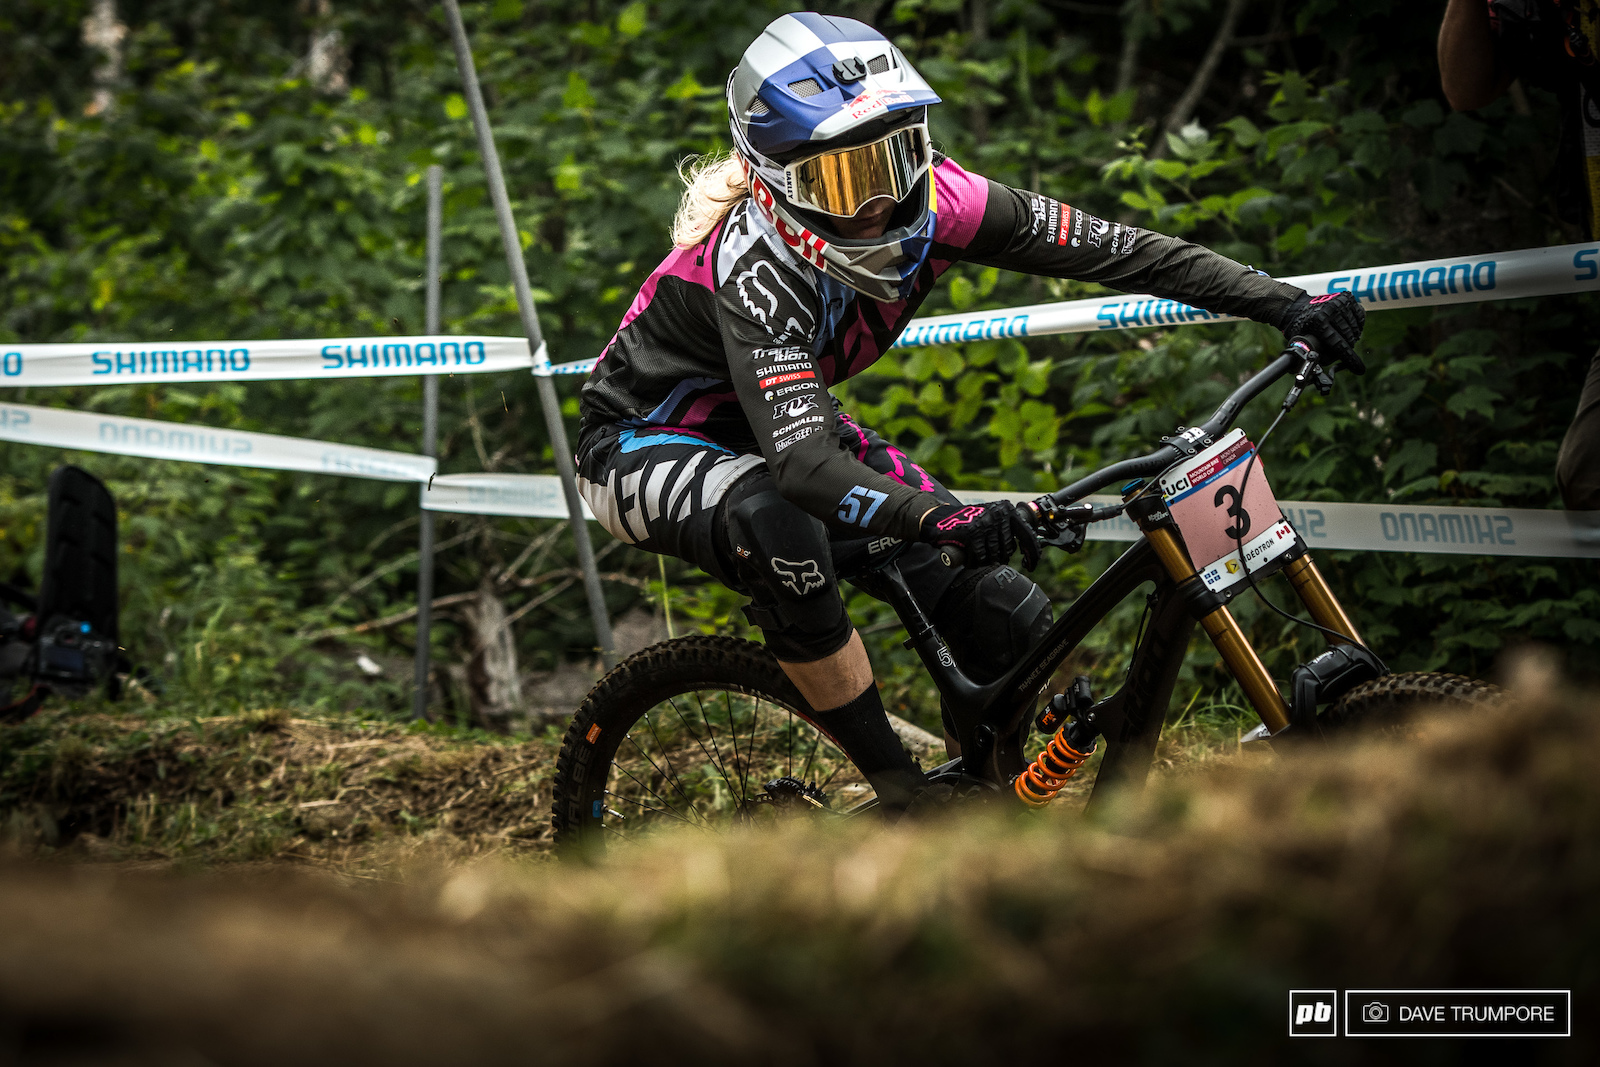 Tahnee Seagrave testing out the grip in the top corners after a night of heavy rain.